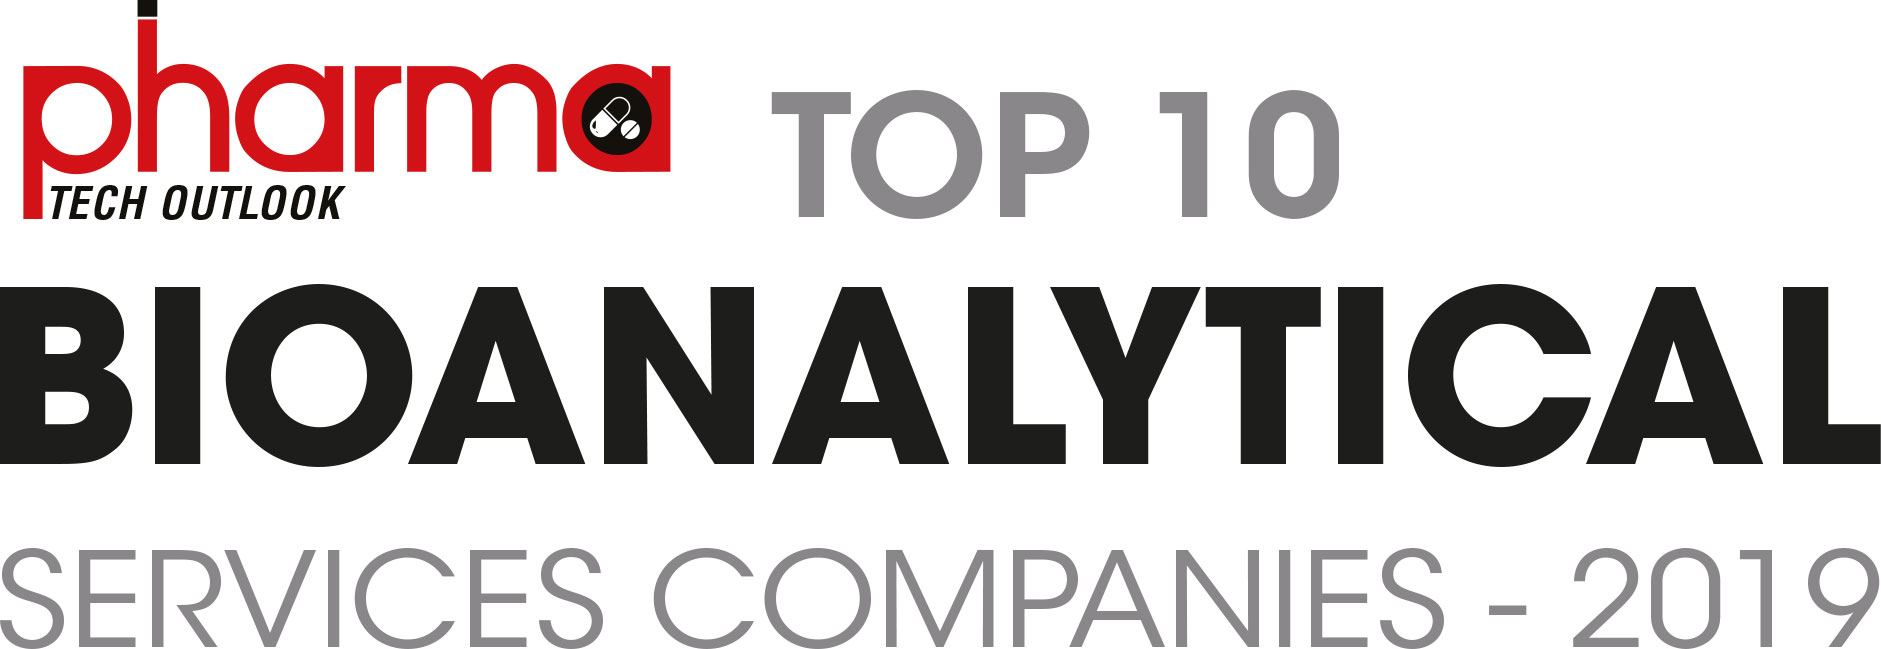 Top 10 Bioanalytical Services Companies - 2019